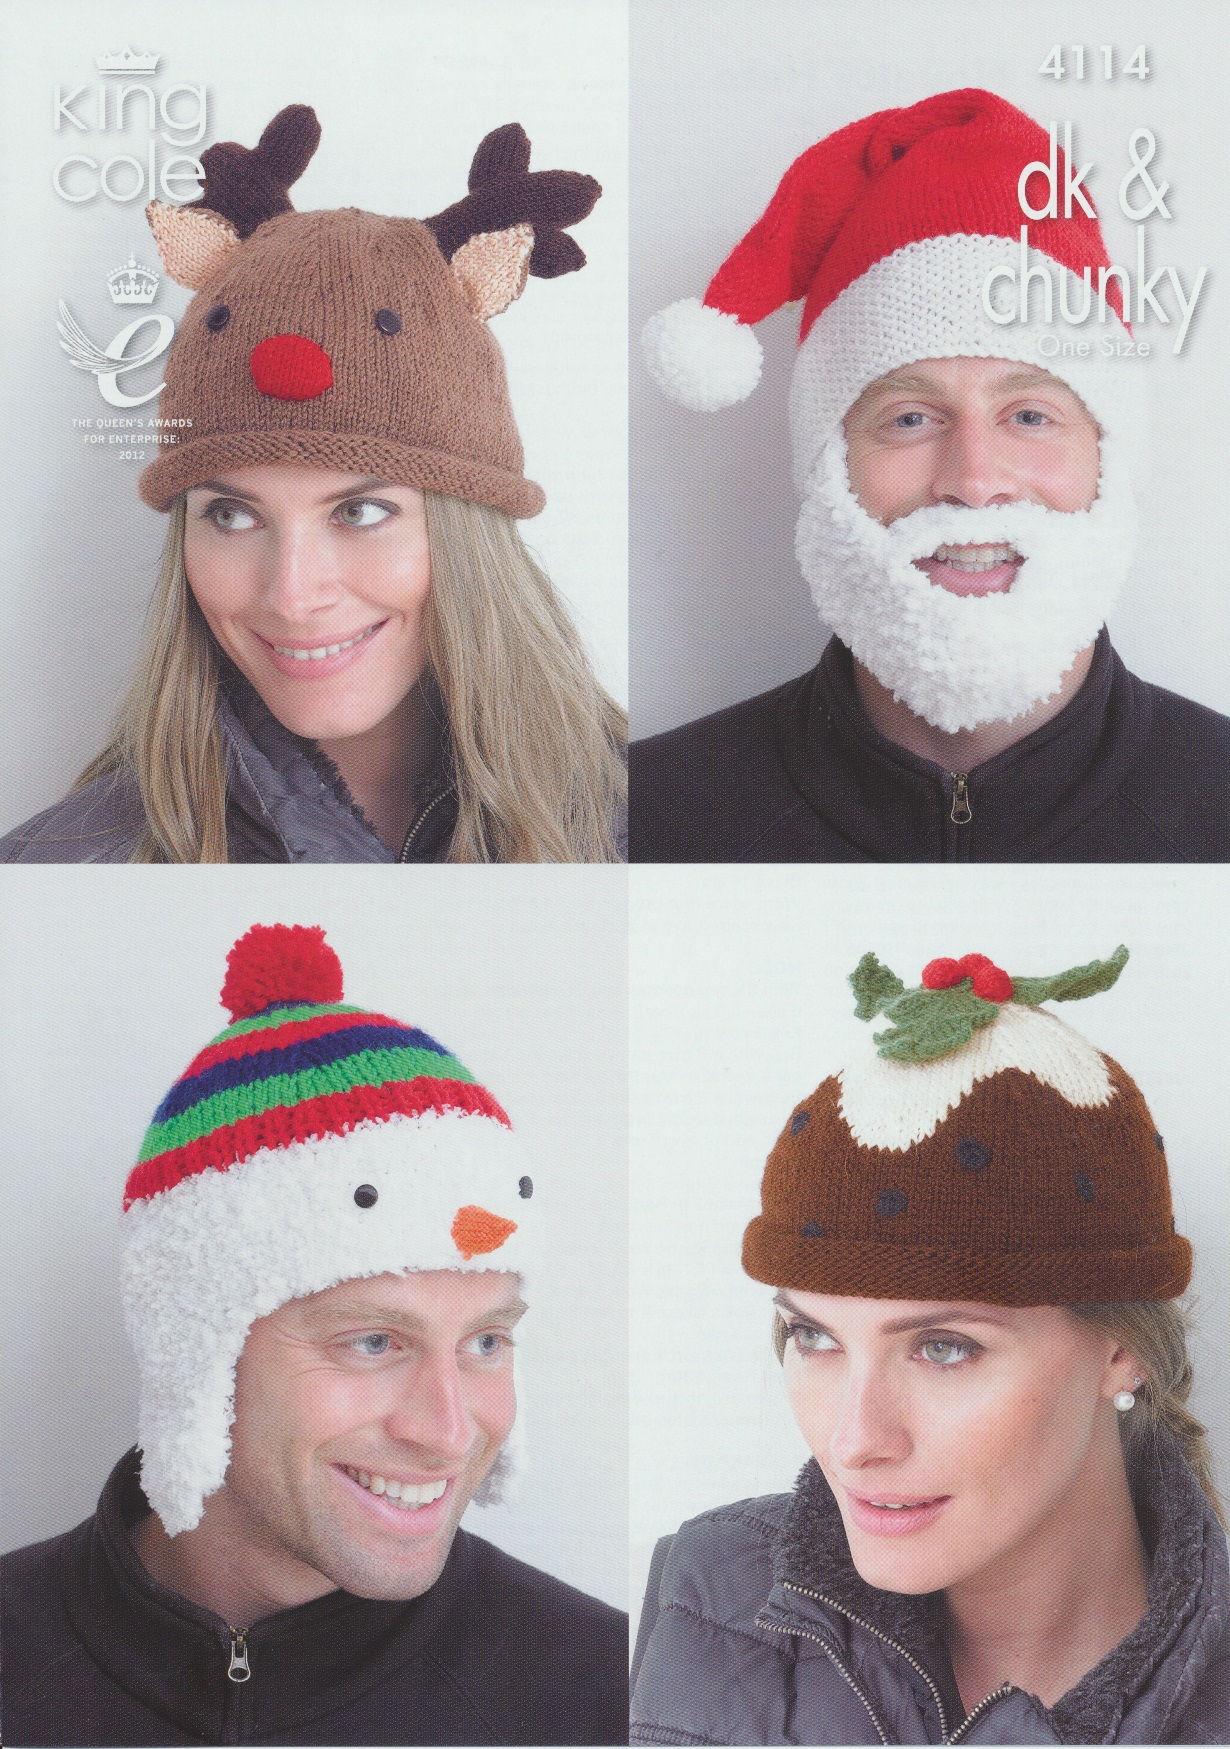 Crochet Christmas Hats Adults.Details About King Cole Adults Christmas Hats Chunky Dk Knitting Pattern 4114